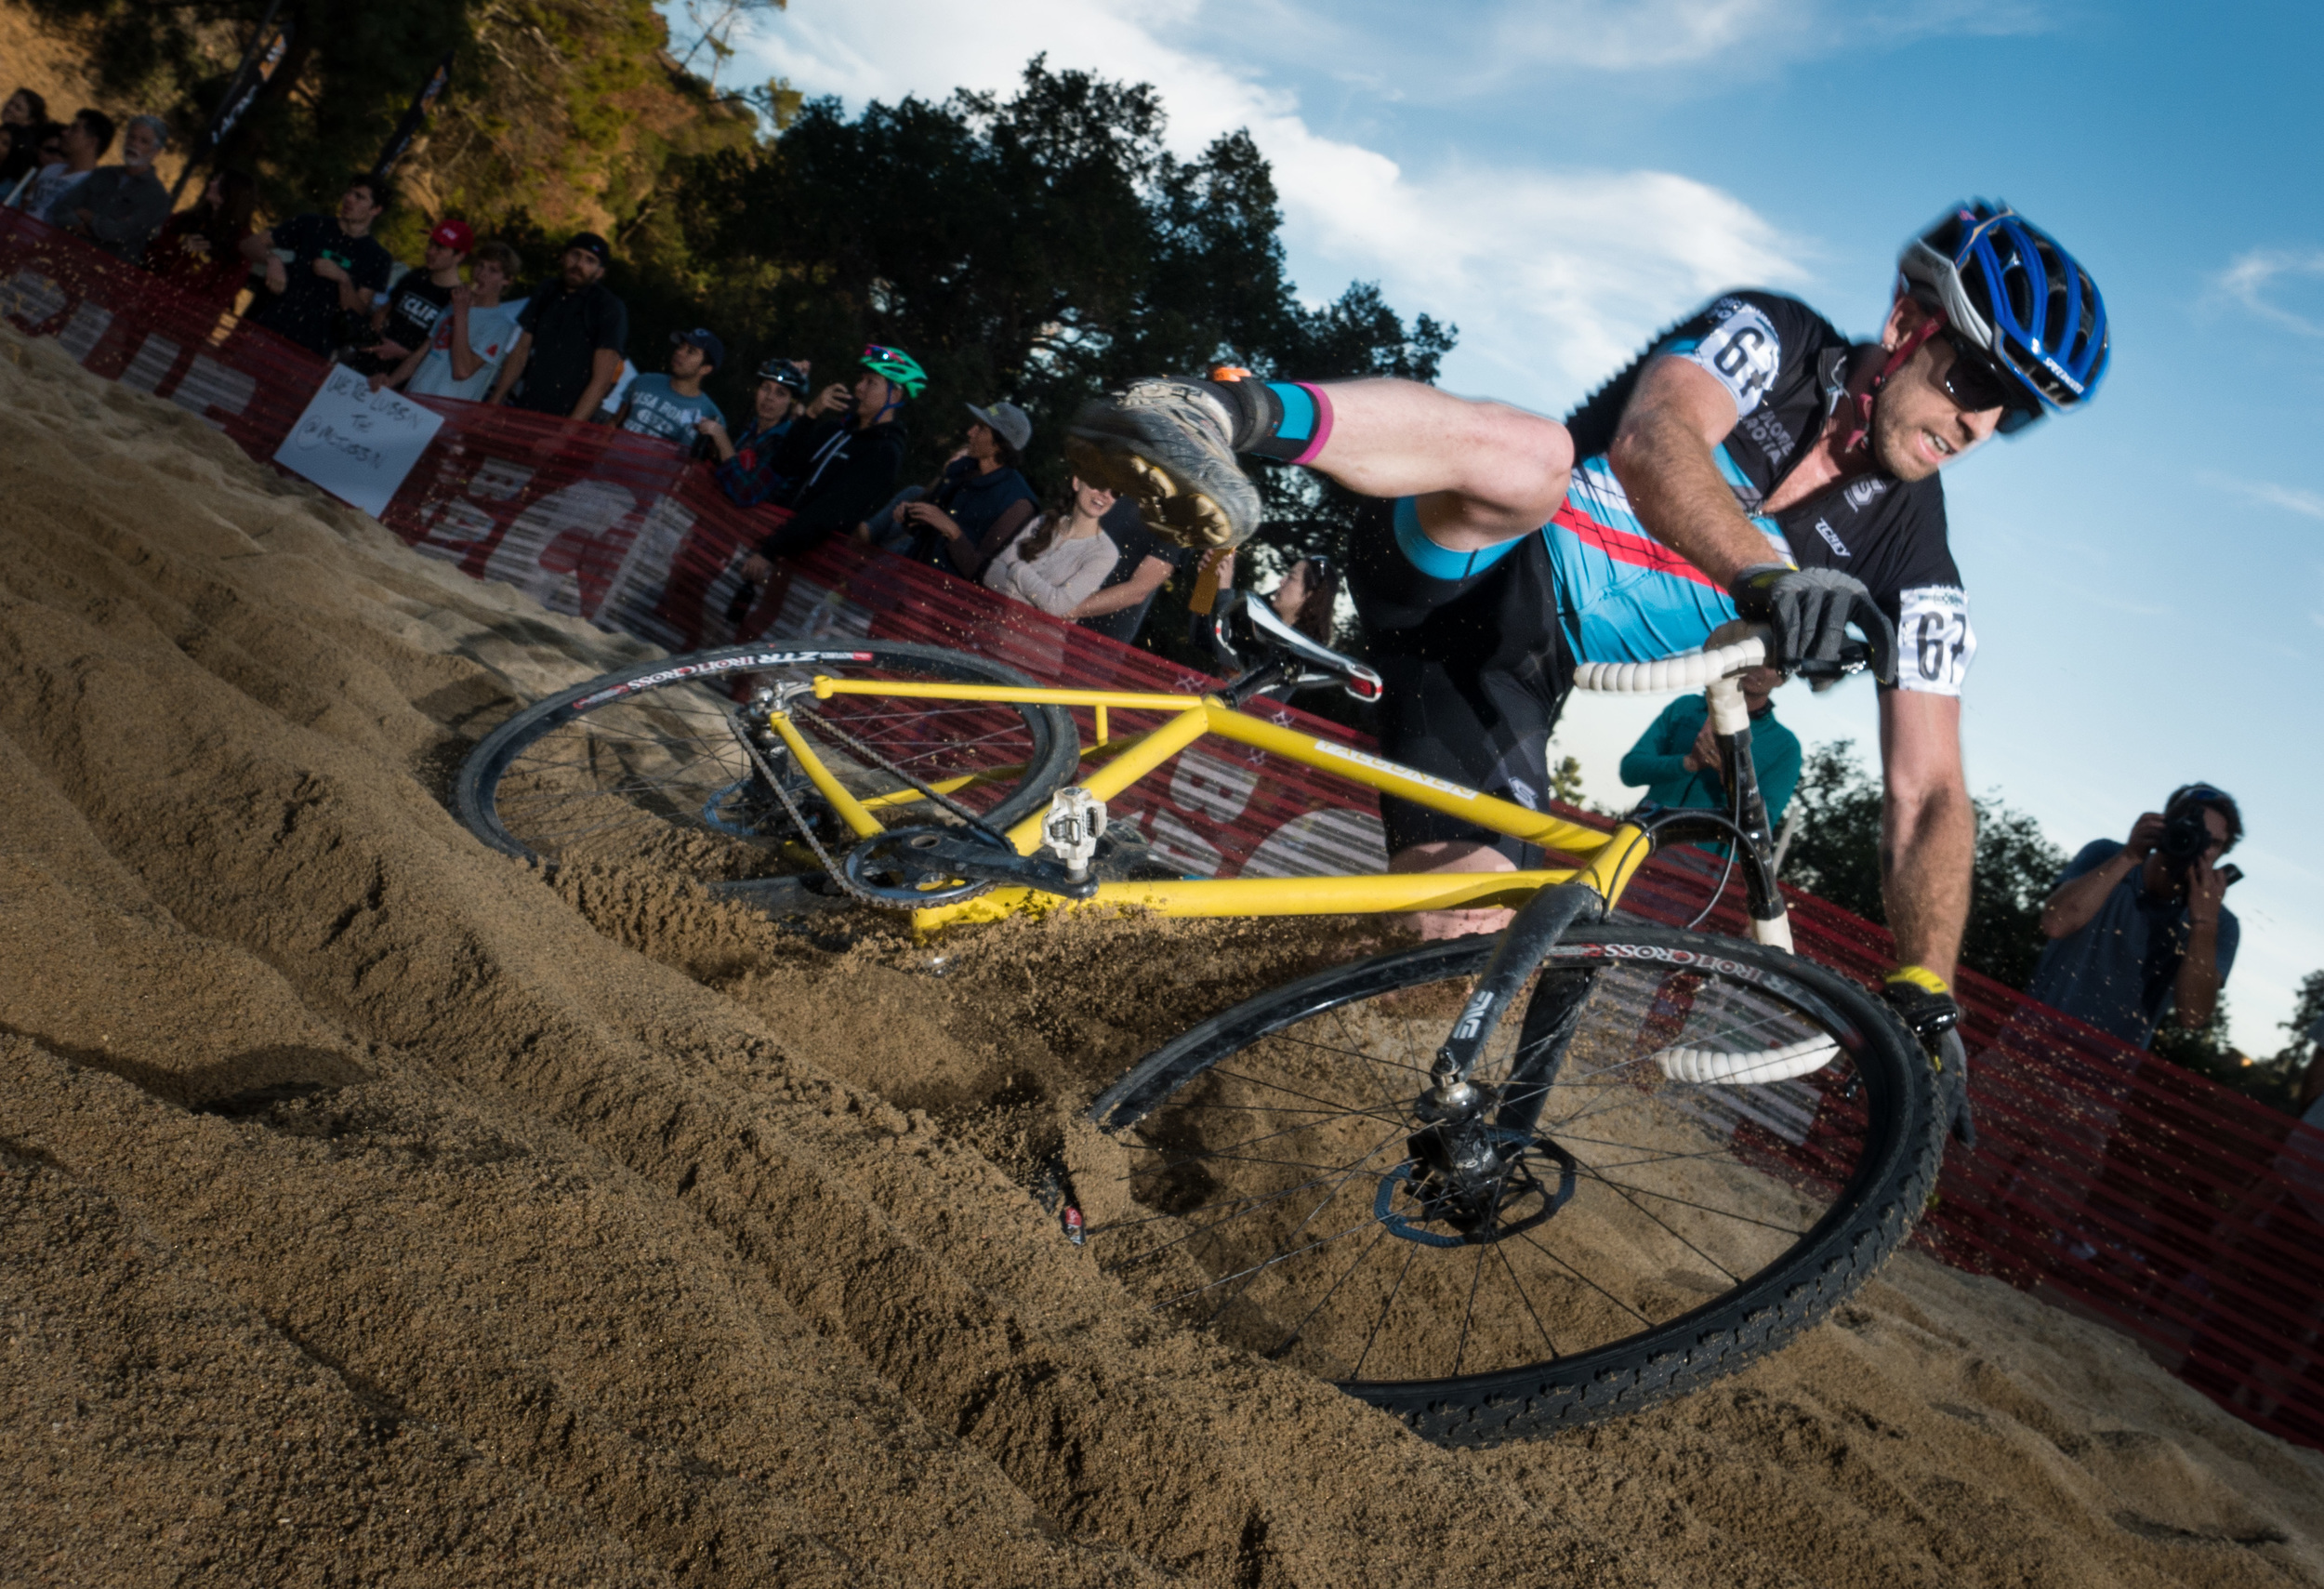 Falling off the bike in the sand pit-  Lumix DMC-GX7, Olympus 12mm F2 lens, Lumopro Strobes